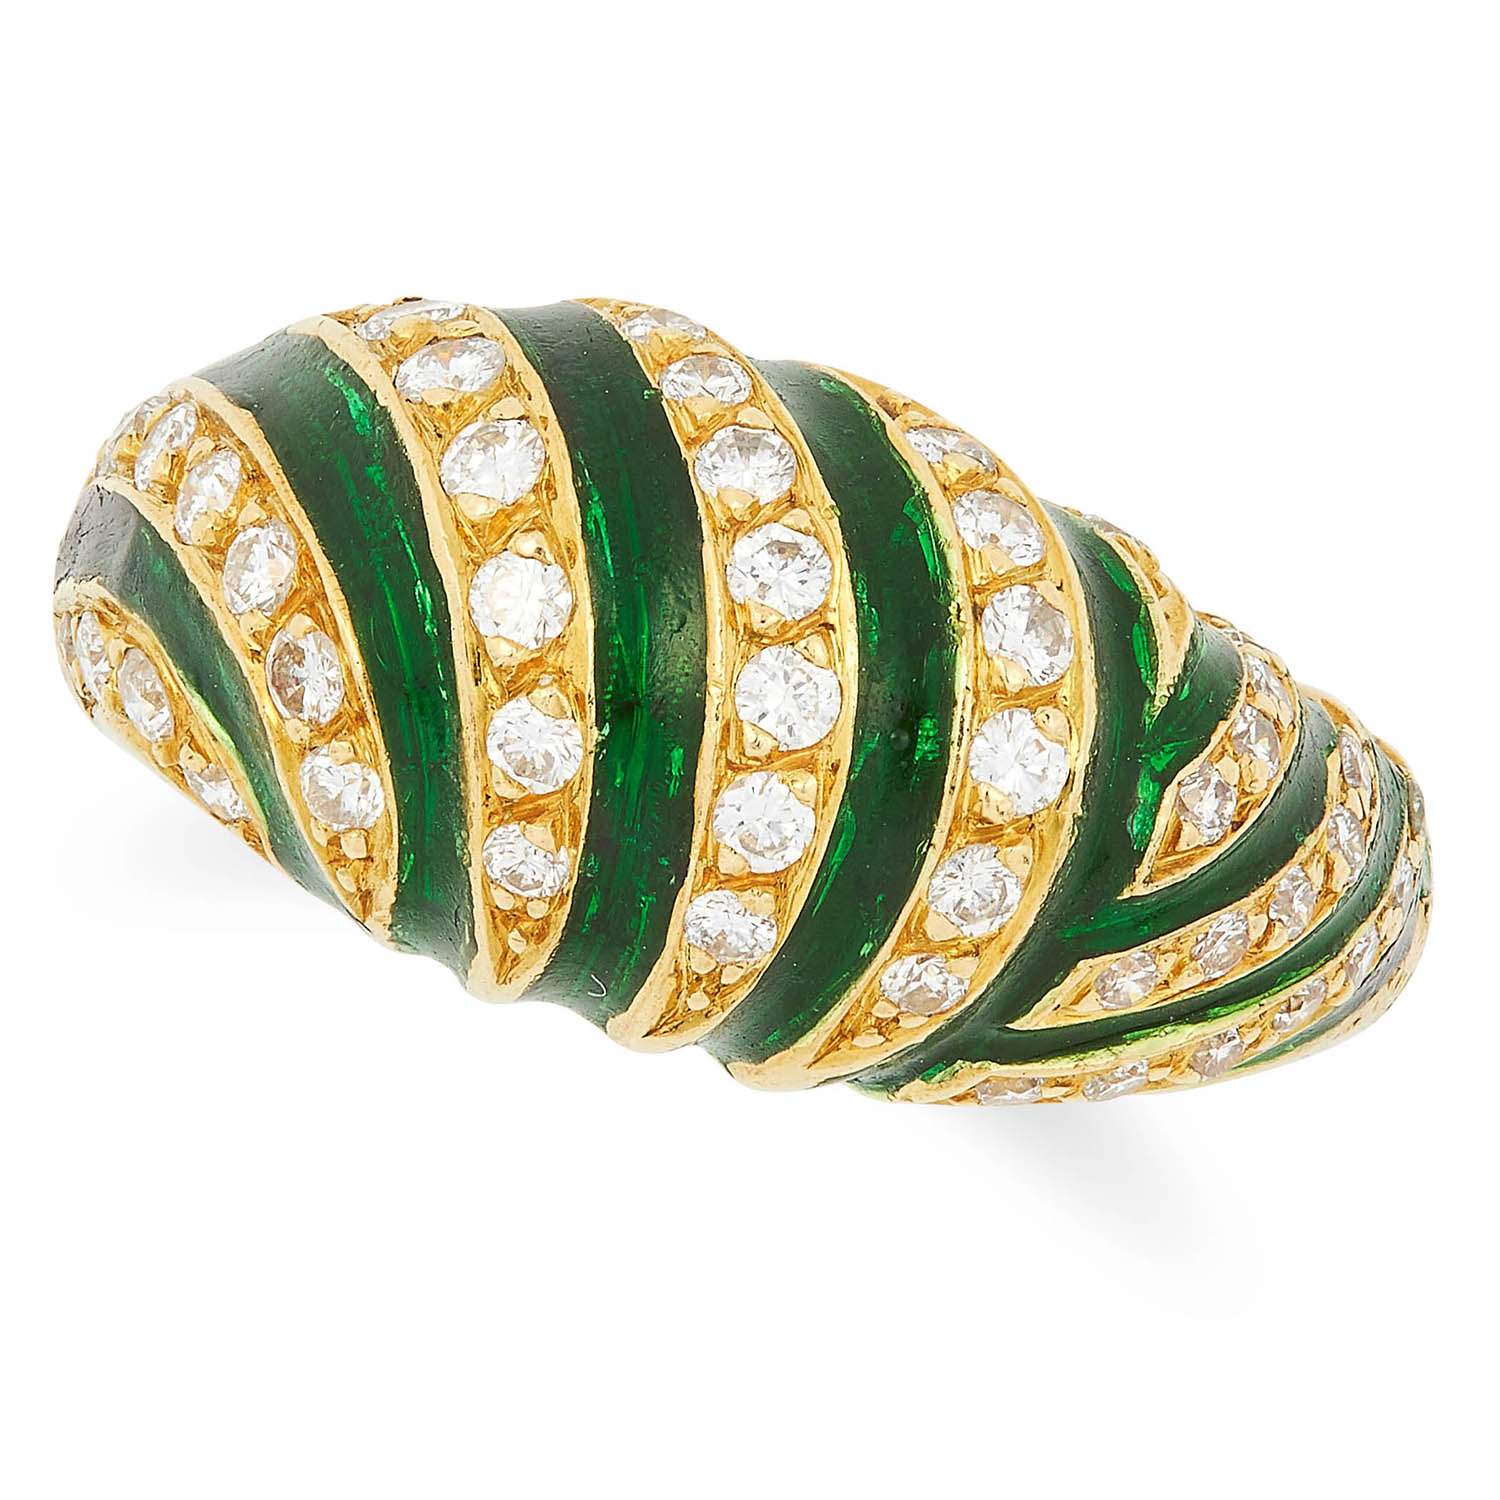 DIAMOND AND ENAMEL RING set with alternating round cut diamonds and green enamel, size N / 6.5, 7.